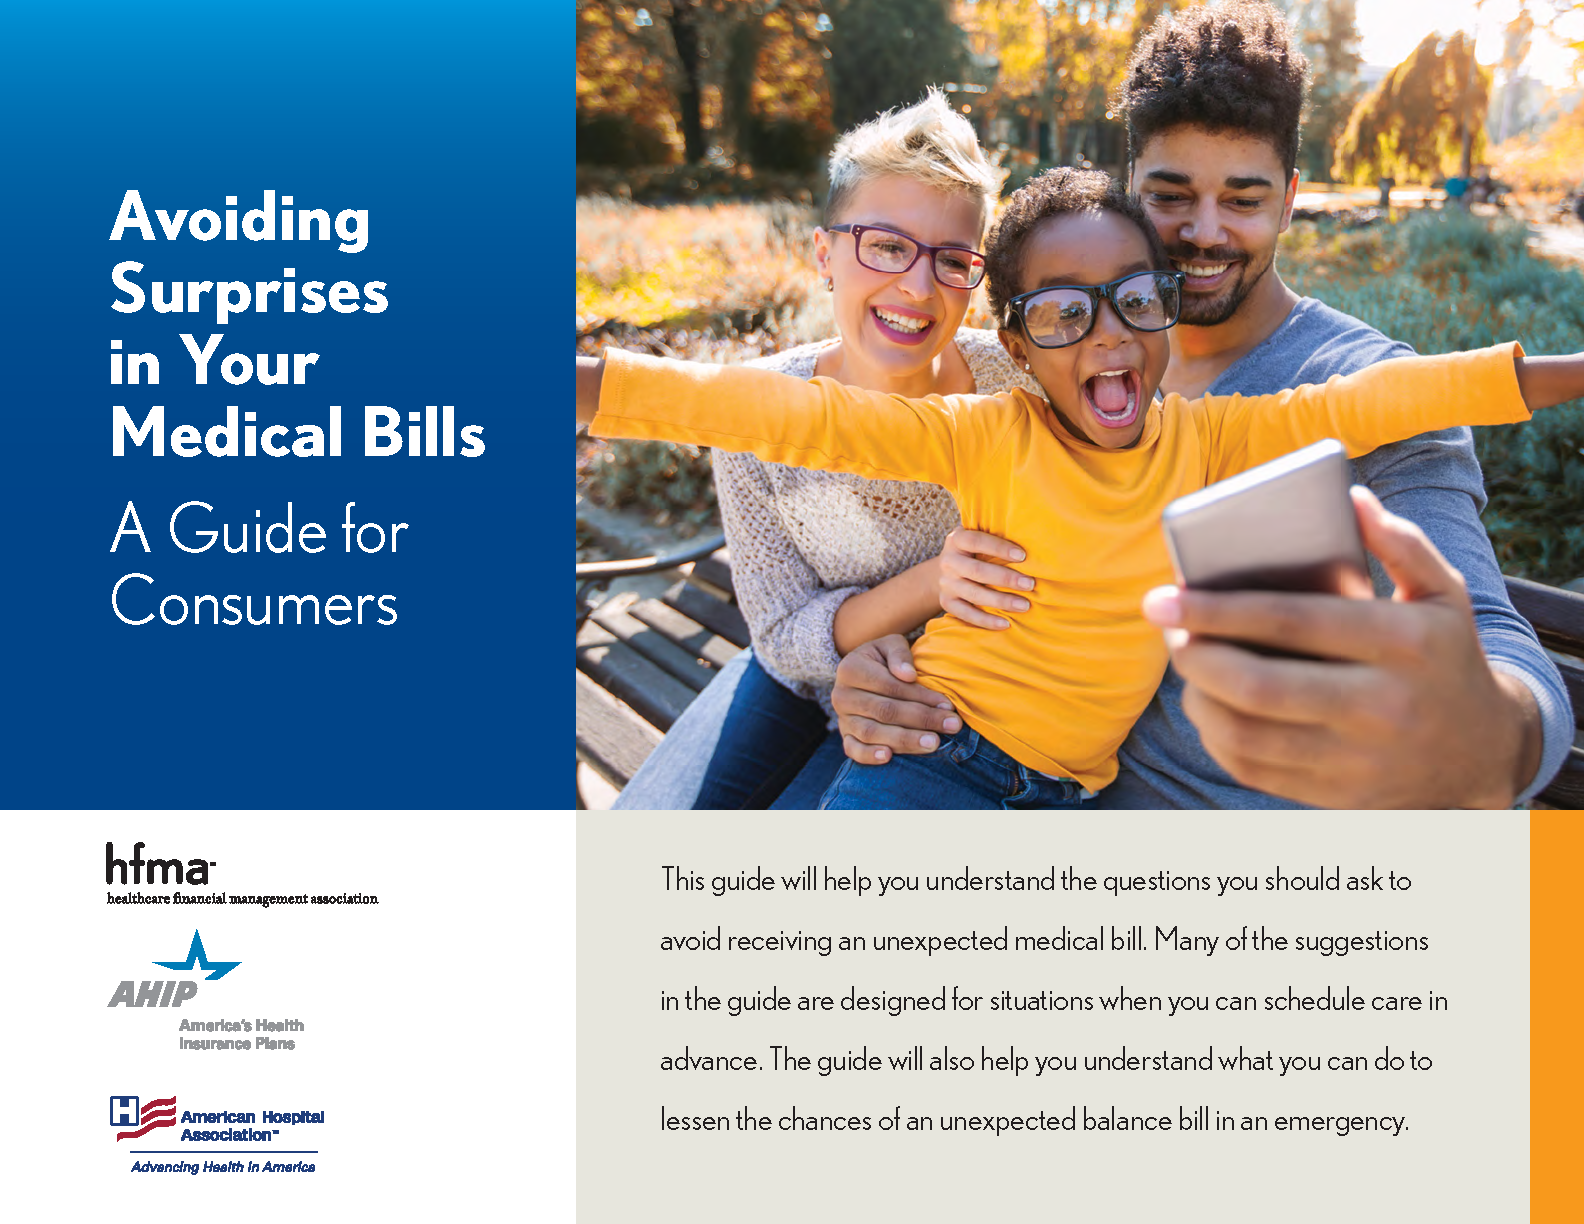 Download Avoiding Surprises in Your Medical Bills: A Guide for Consumers English-language version PDF